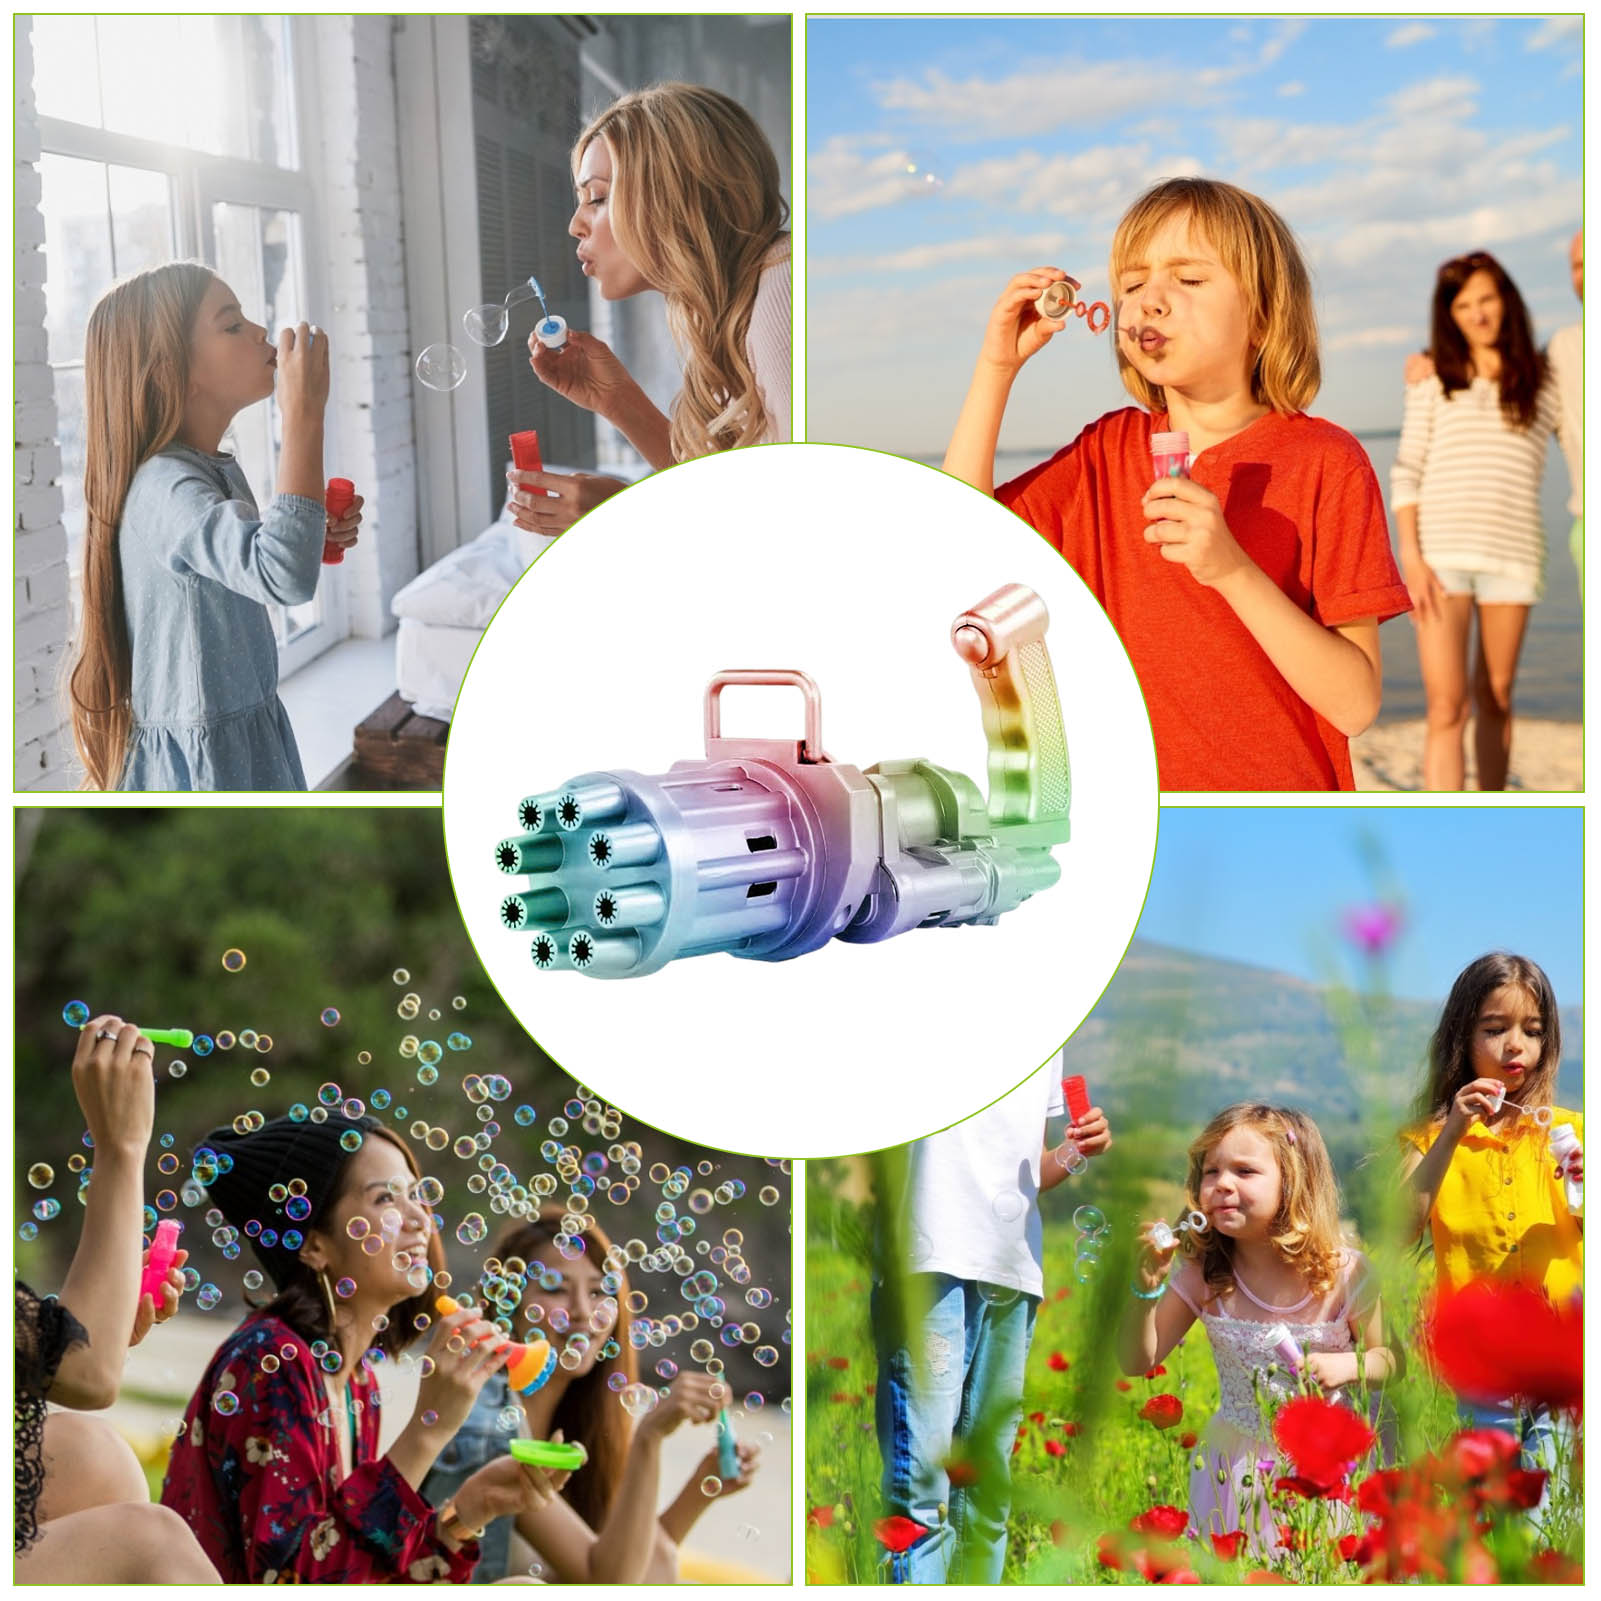 Kids Gatling Bubble Gun Toys Bubble Gun Strong Tightness Bubble Maker Summer Outdoor Automatic Bubble Blower Wedding Props  - buy with discount